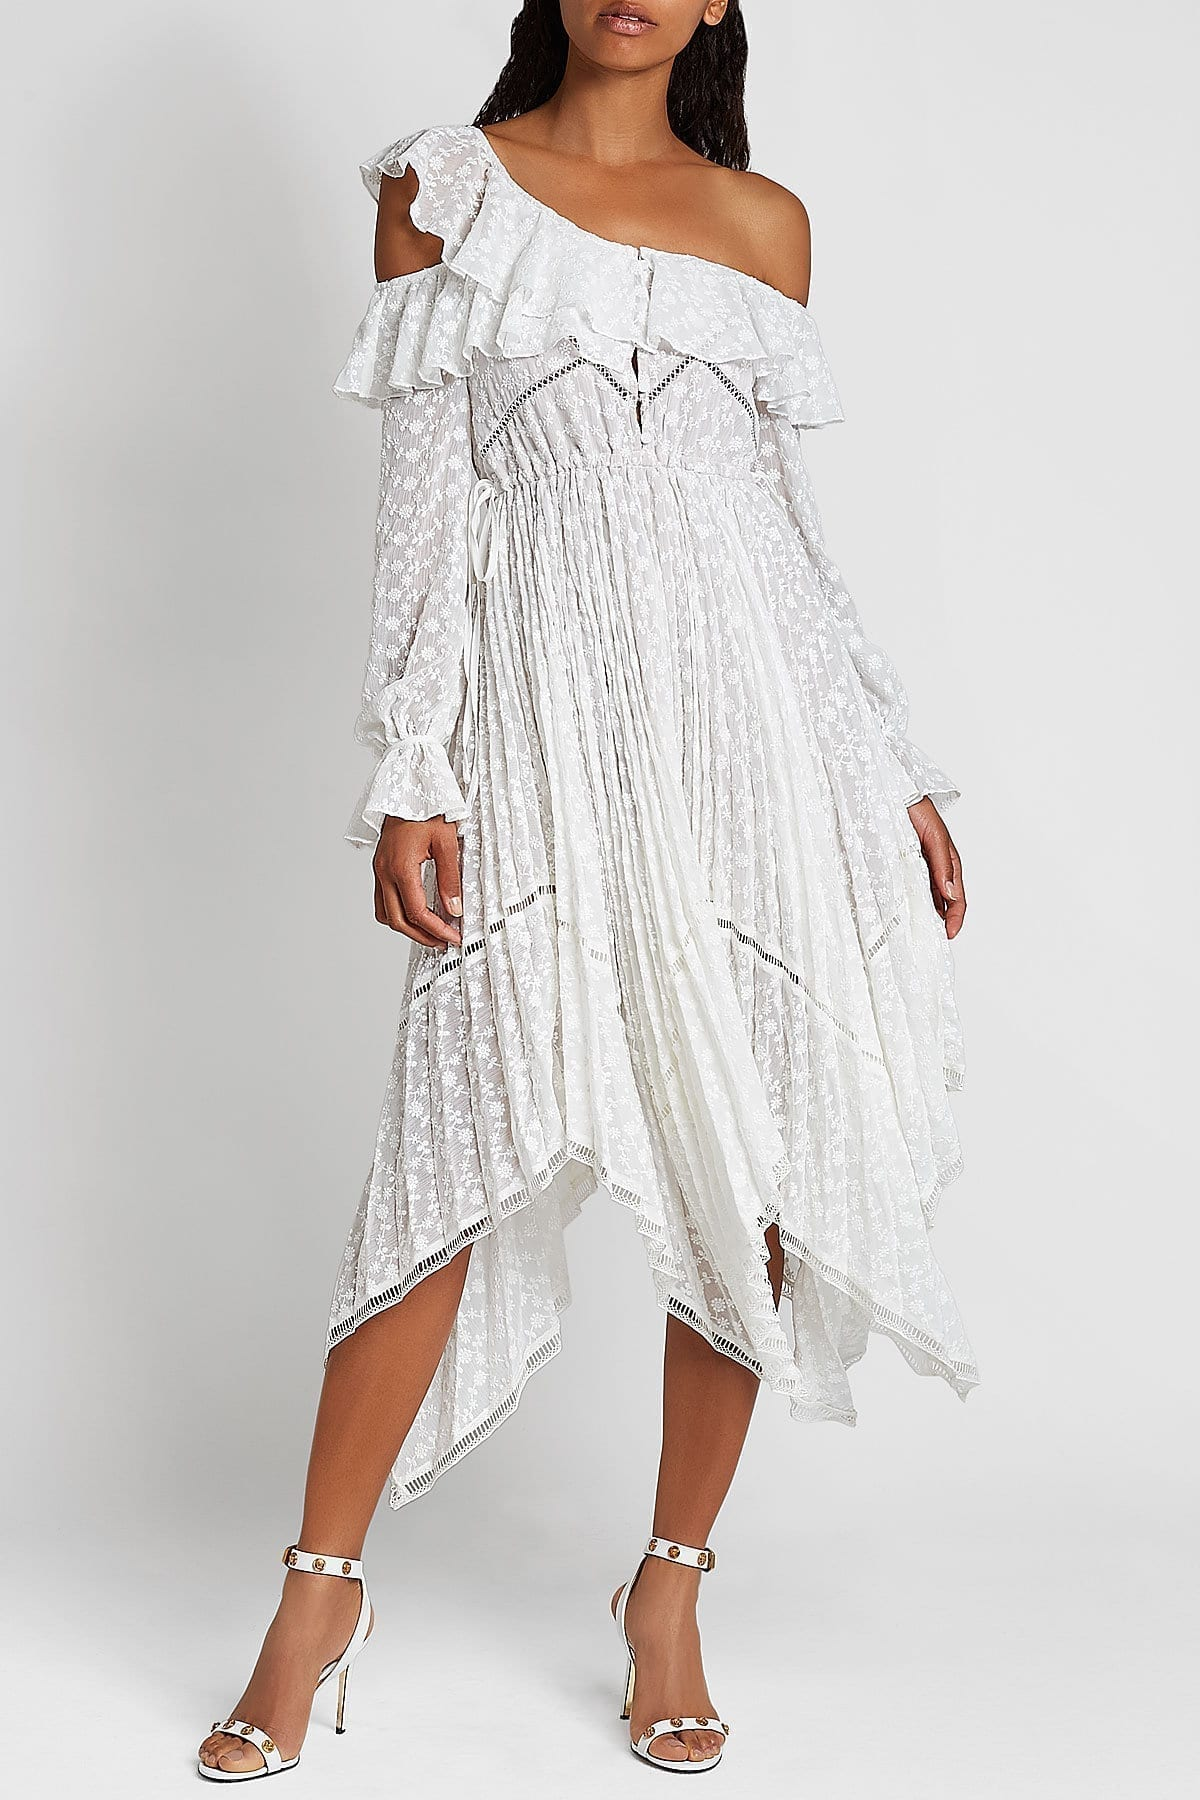 SELF-PORTRAIT Off-Shoulder Daisy Embroidered Lace White Dress